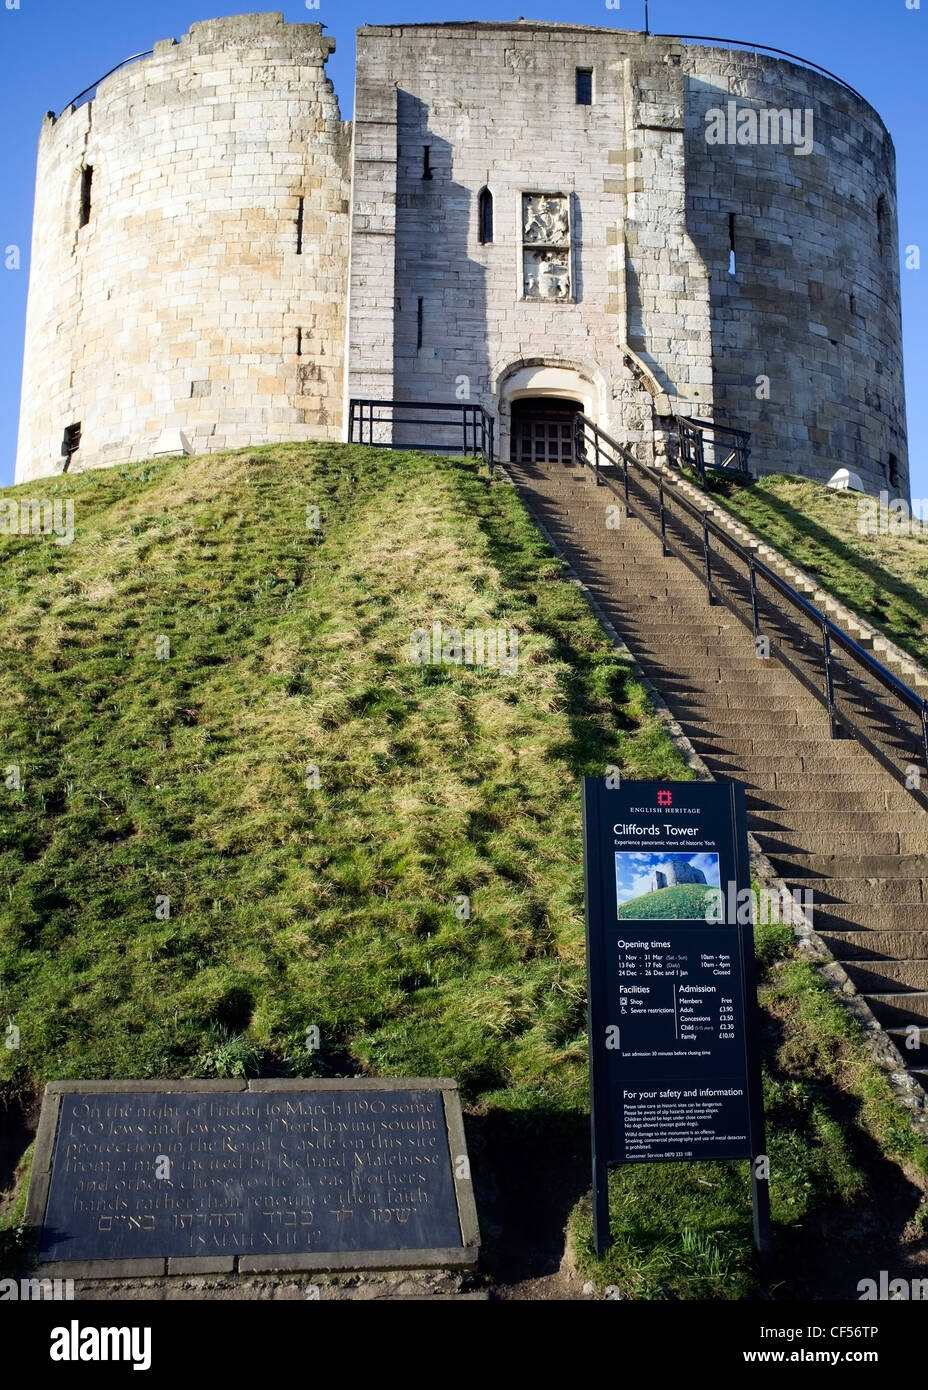 Cliffords Tower, site of a medieval siege and massacre, York, England - Stock Image